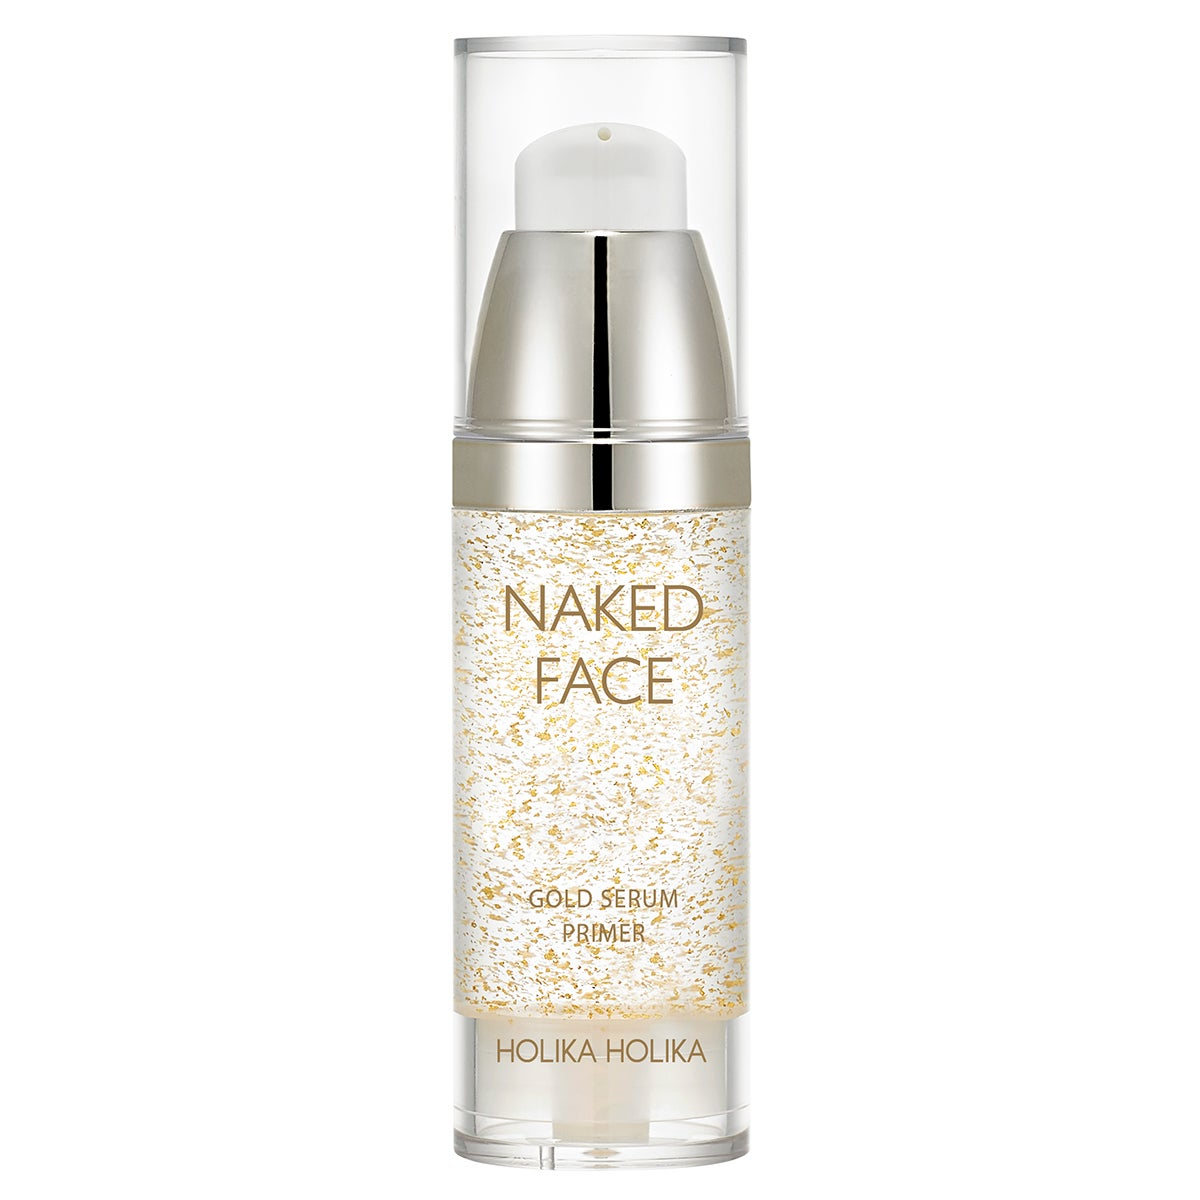 Naked Face Gold Serum Primer, 30 ml Holika Holika Primer